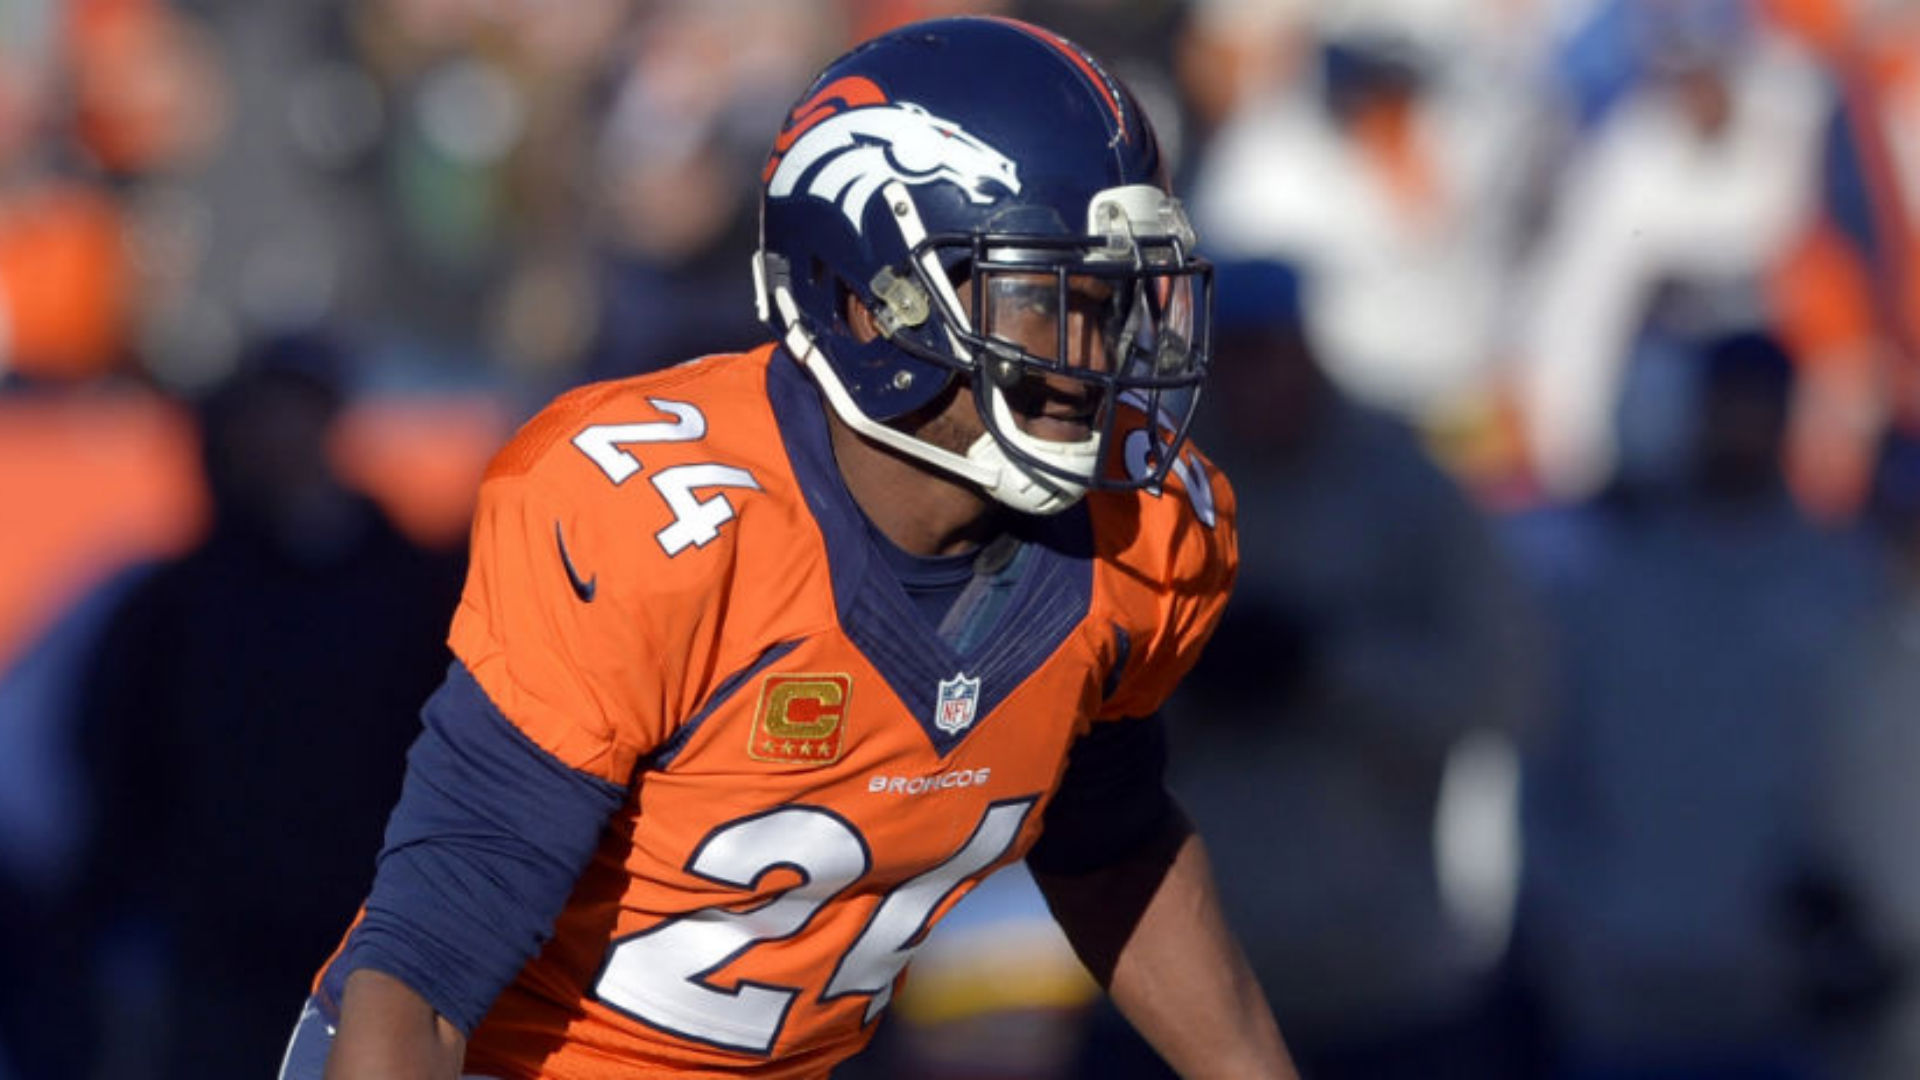 Reports broncos to release future hall of fame champ bailey sporting news  jpg 1920x1080 Champ bailey be9274920